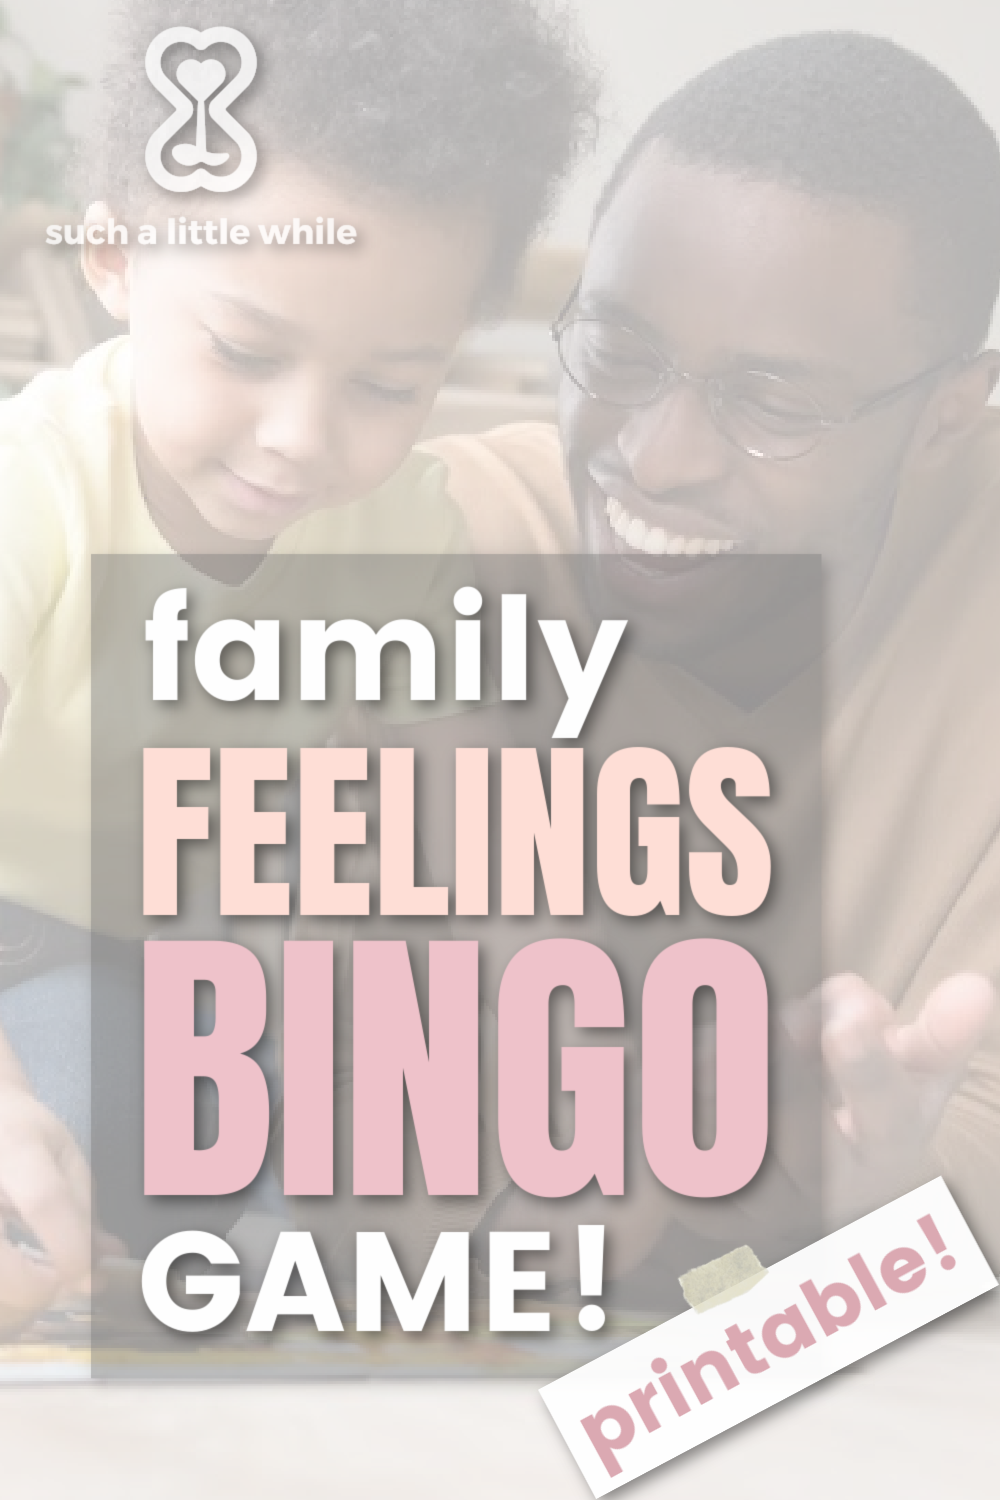 Family Feelings Bingo Game Printable by Such a Little While